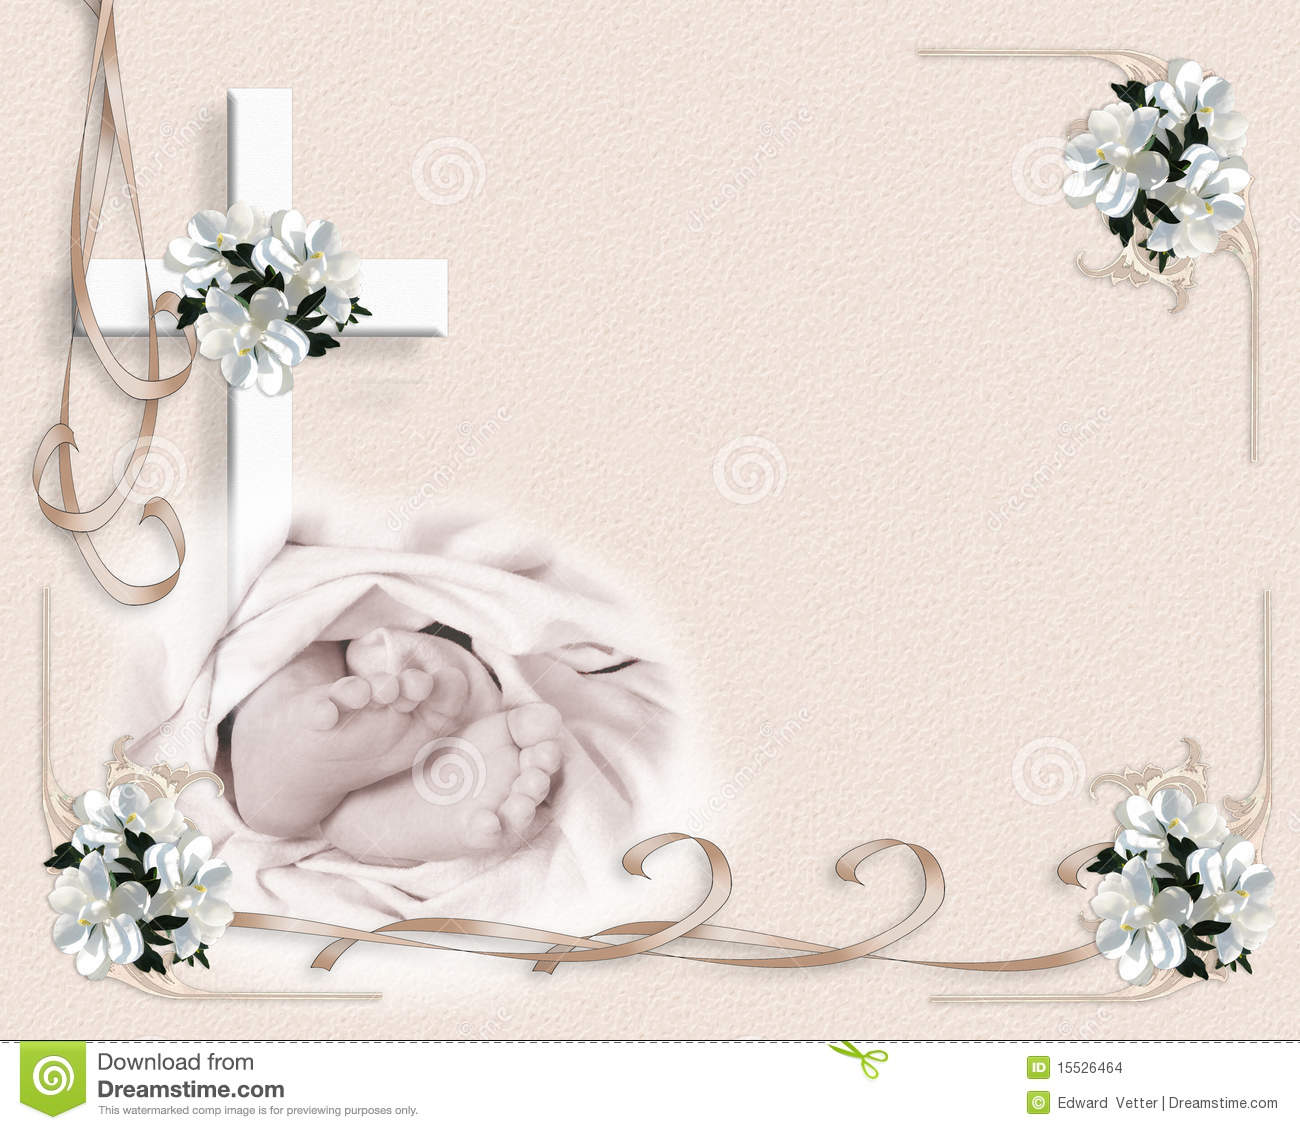 Christening baptism invitation stock illustration illustration of christening baptism invitation stopboris